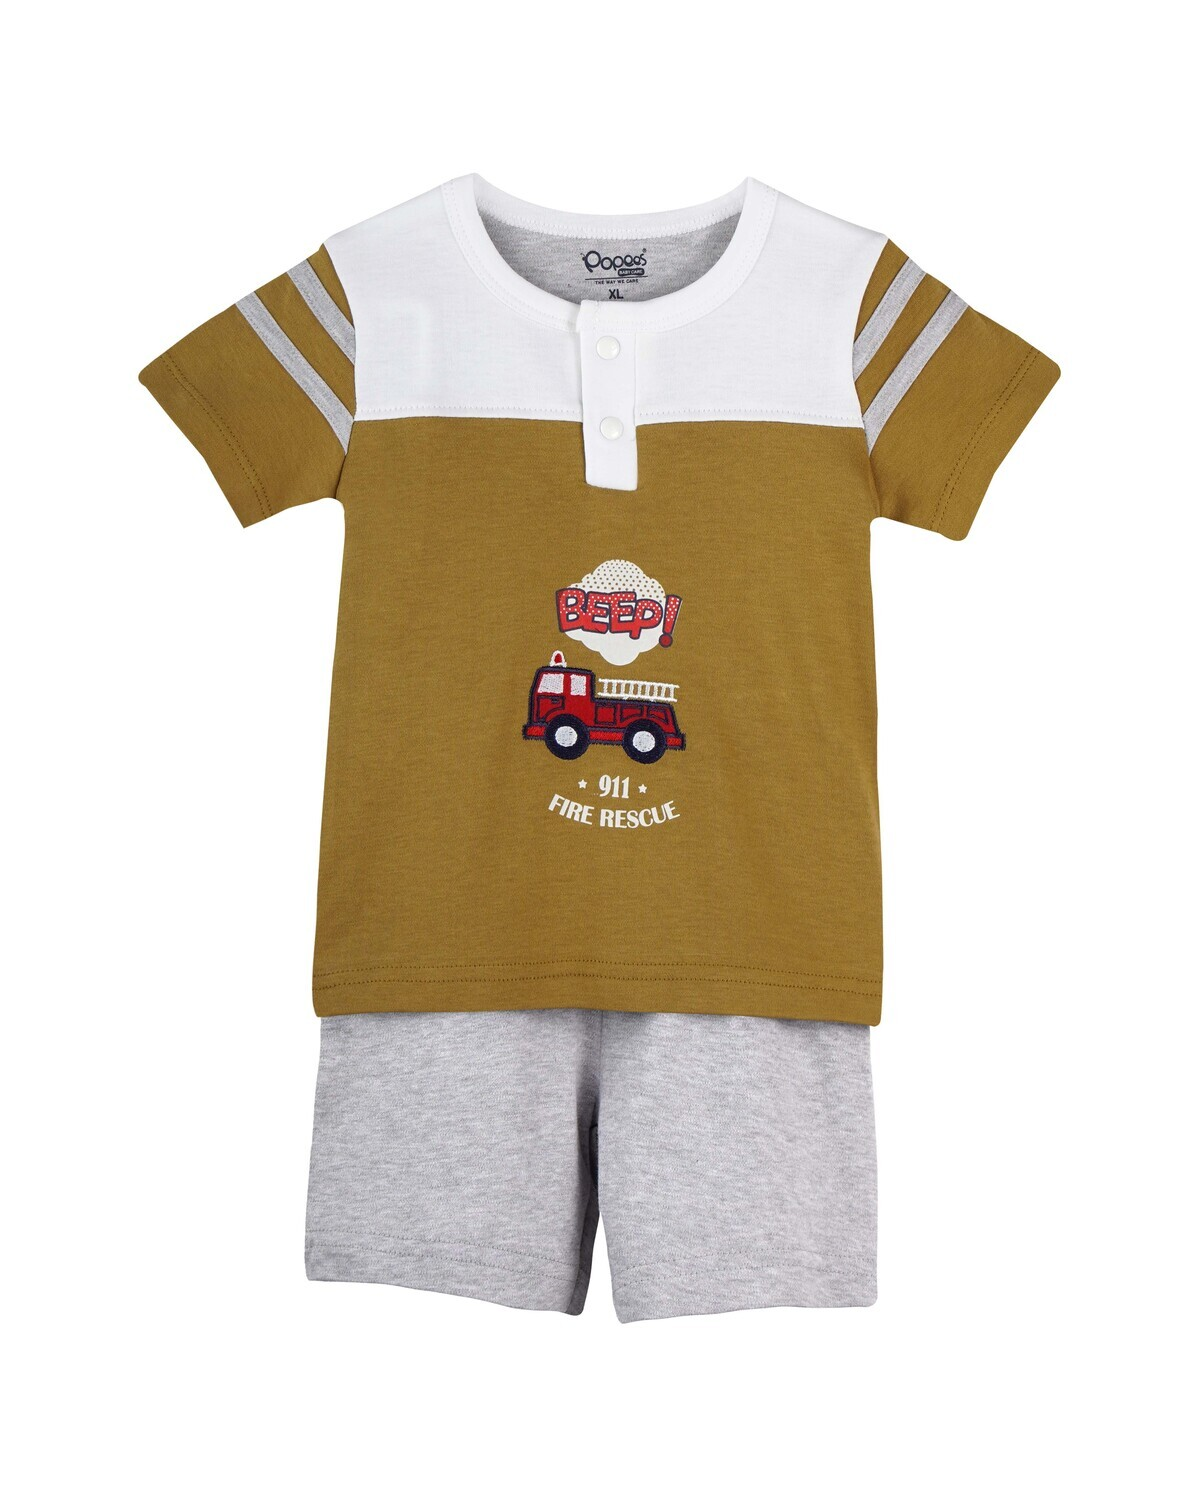 DARVI Dull Gold Half Sleeve Top and Trouser for Baby Boys